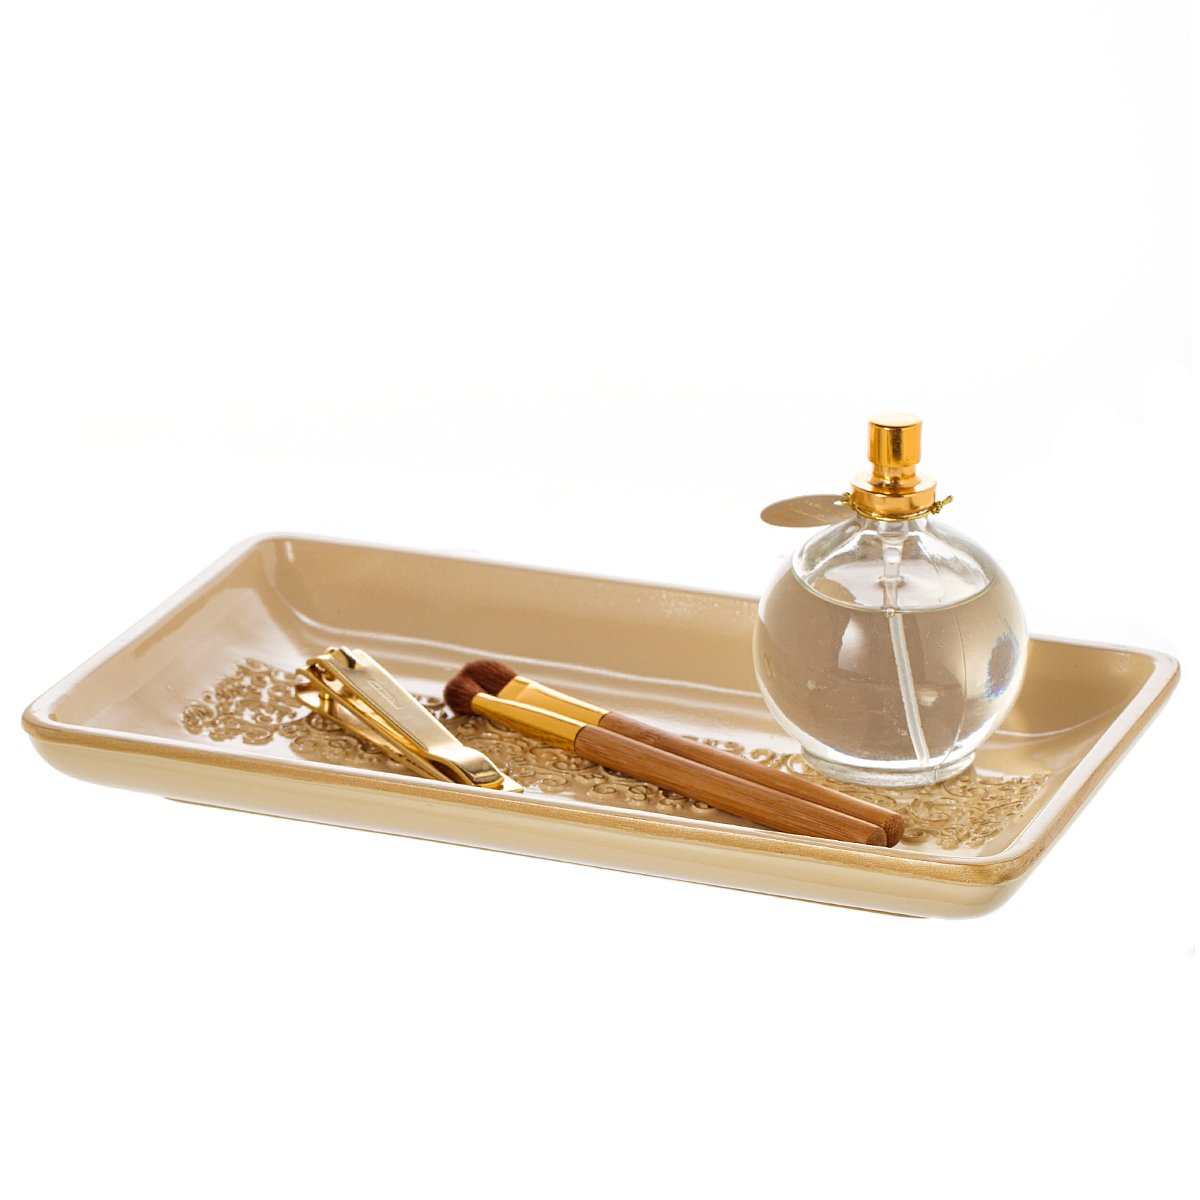 Amazon.com: Shannon Vanity Tray for Dresser, Decorative Cosmetics ...